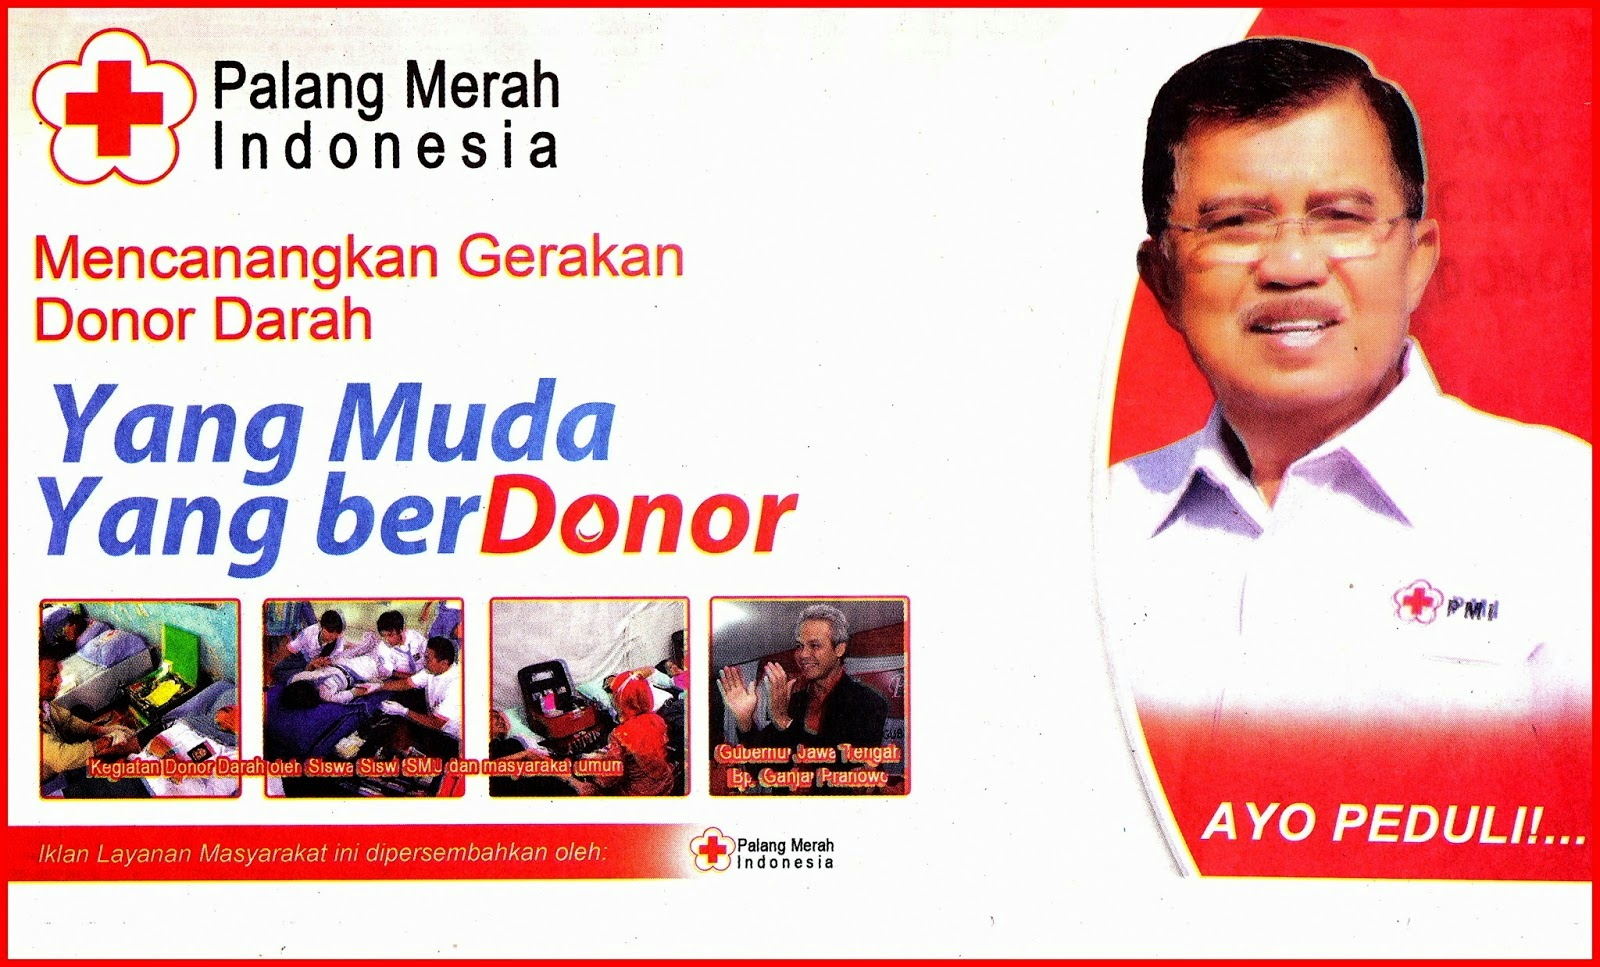 Manfaat Donor Darah